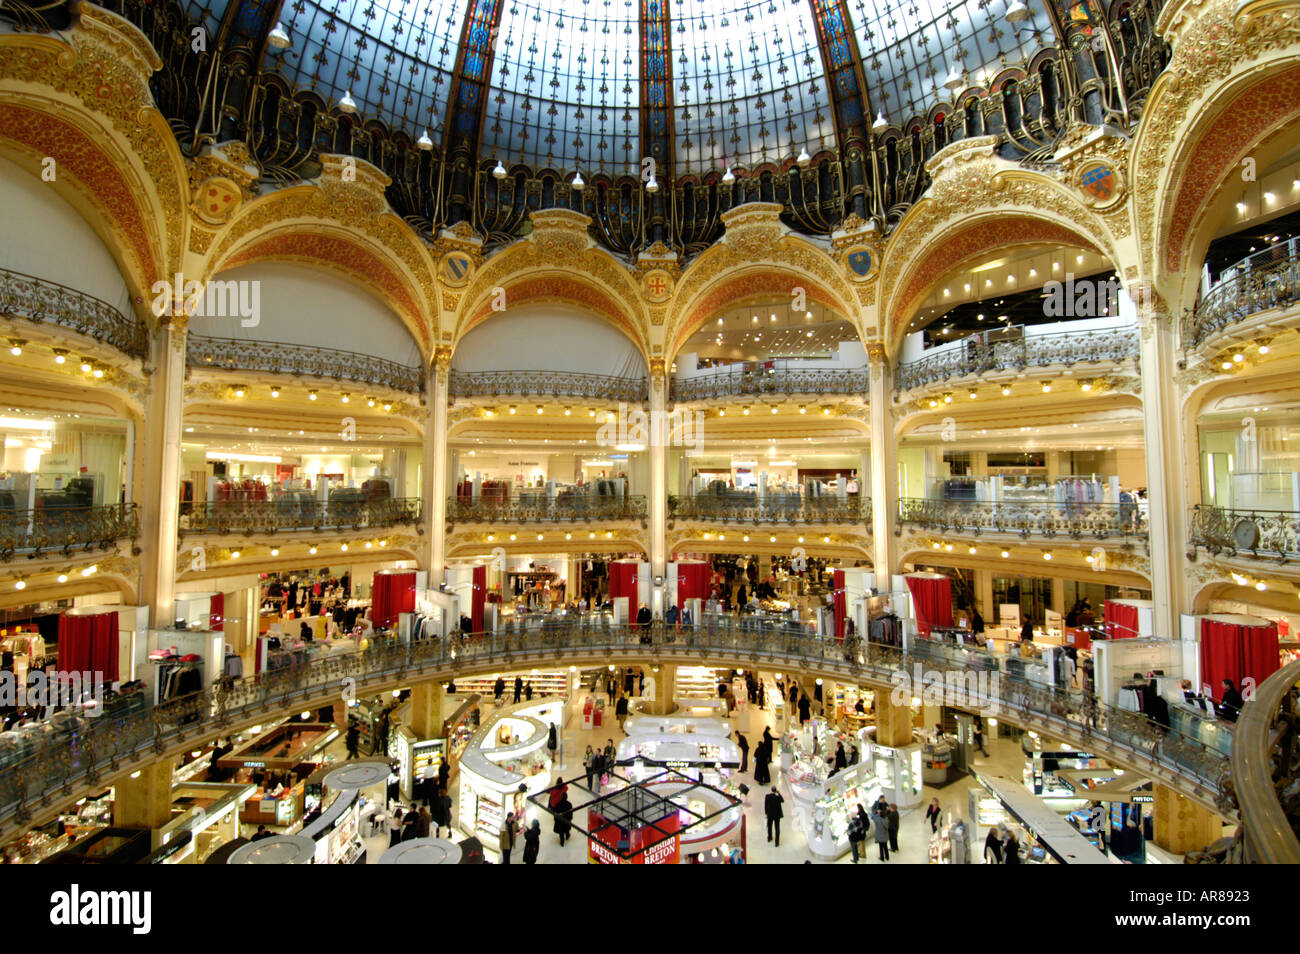 galeries lafayette department store paris france stock photo royalty free image 1542434 alamy. Black Bedroom Furniture Sets. Home Design Ideas